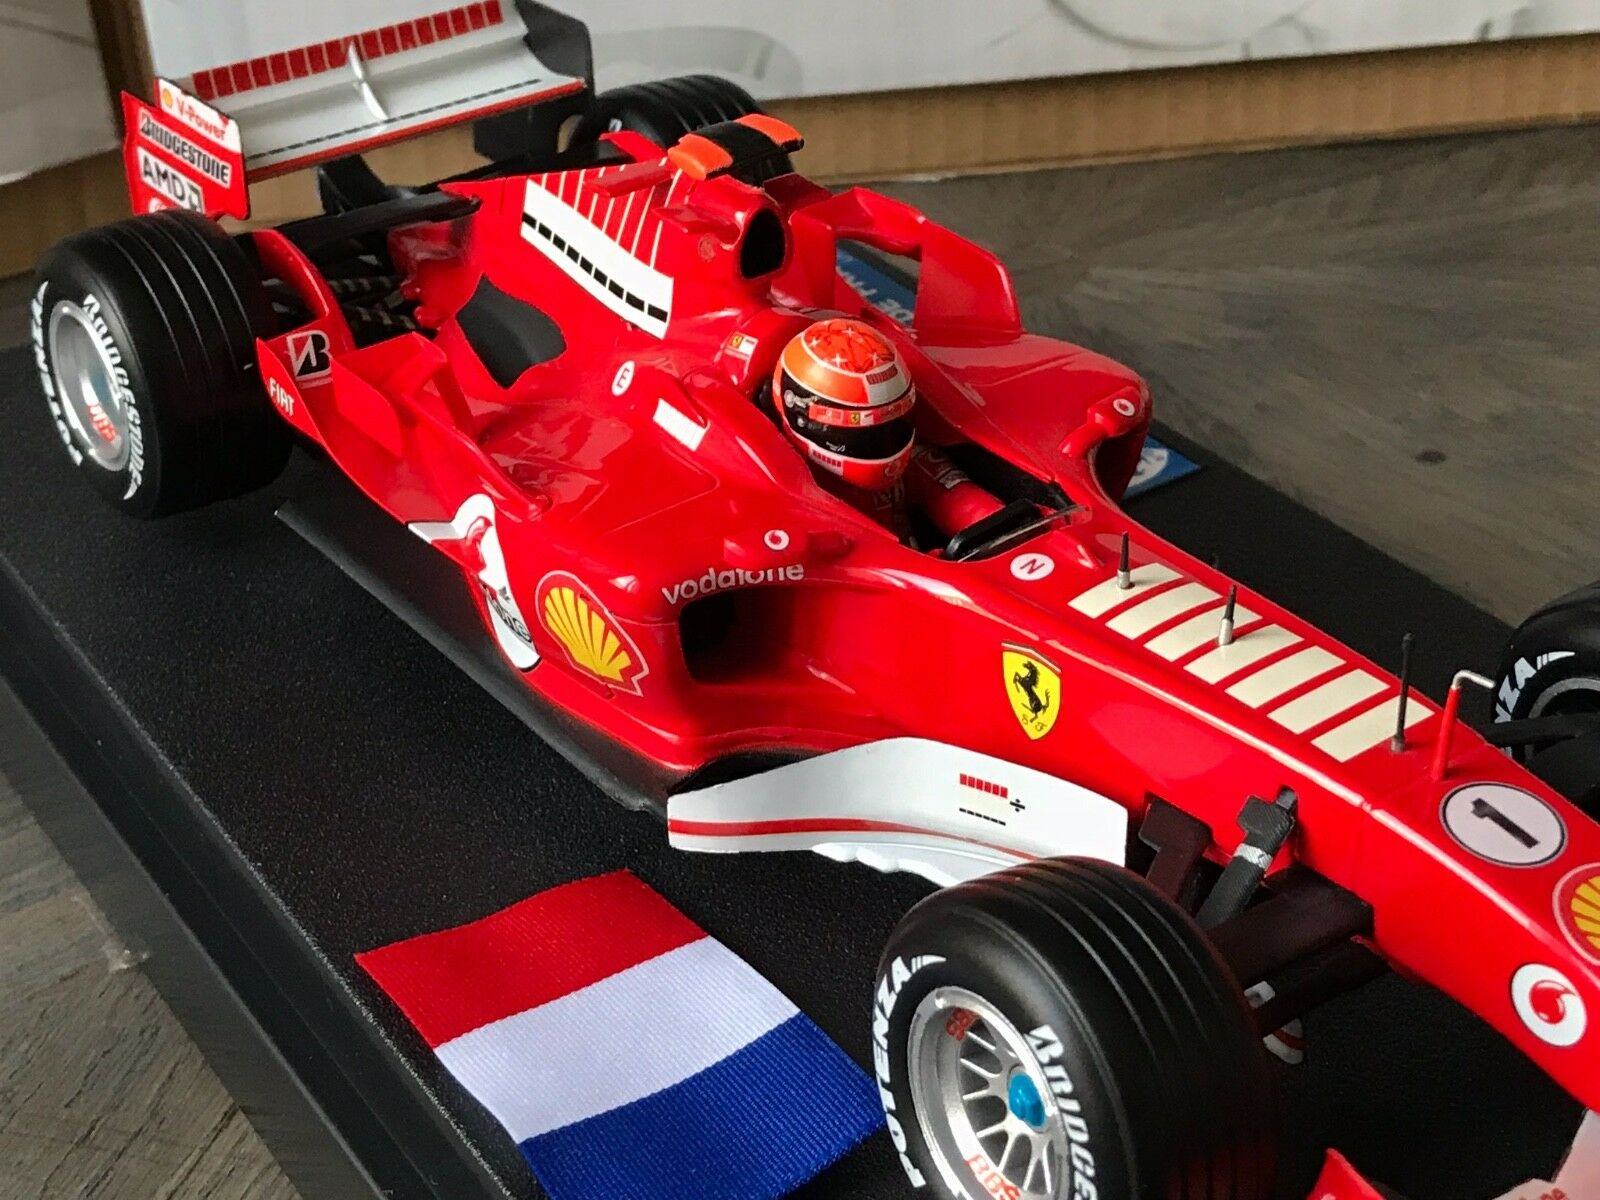 F1 F1 F1 Ferrari F2005, Version GP France, Schumacher, Ltd  GP France  1/18 Neuf 16681d